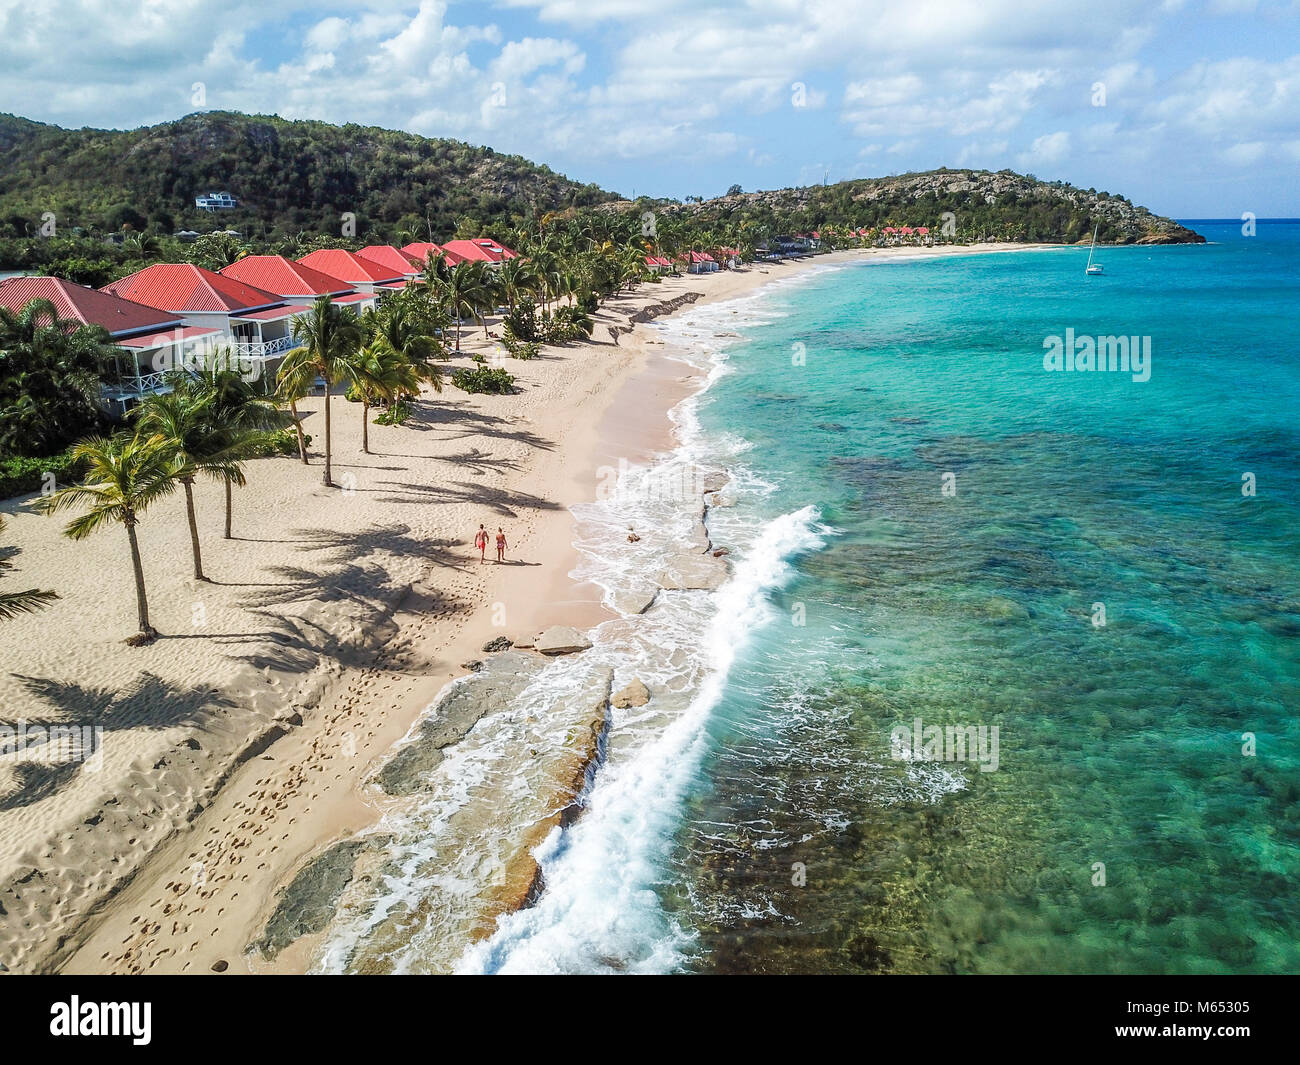 Jolly Beach Resort Antigua Map%0A Galley Bay Beach Resort and Spa  Antigua  Stock Image